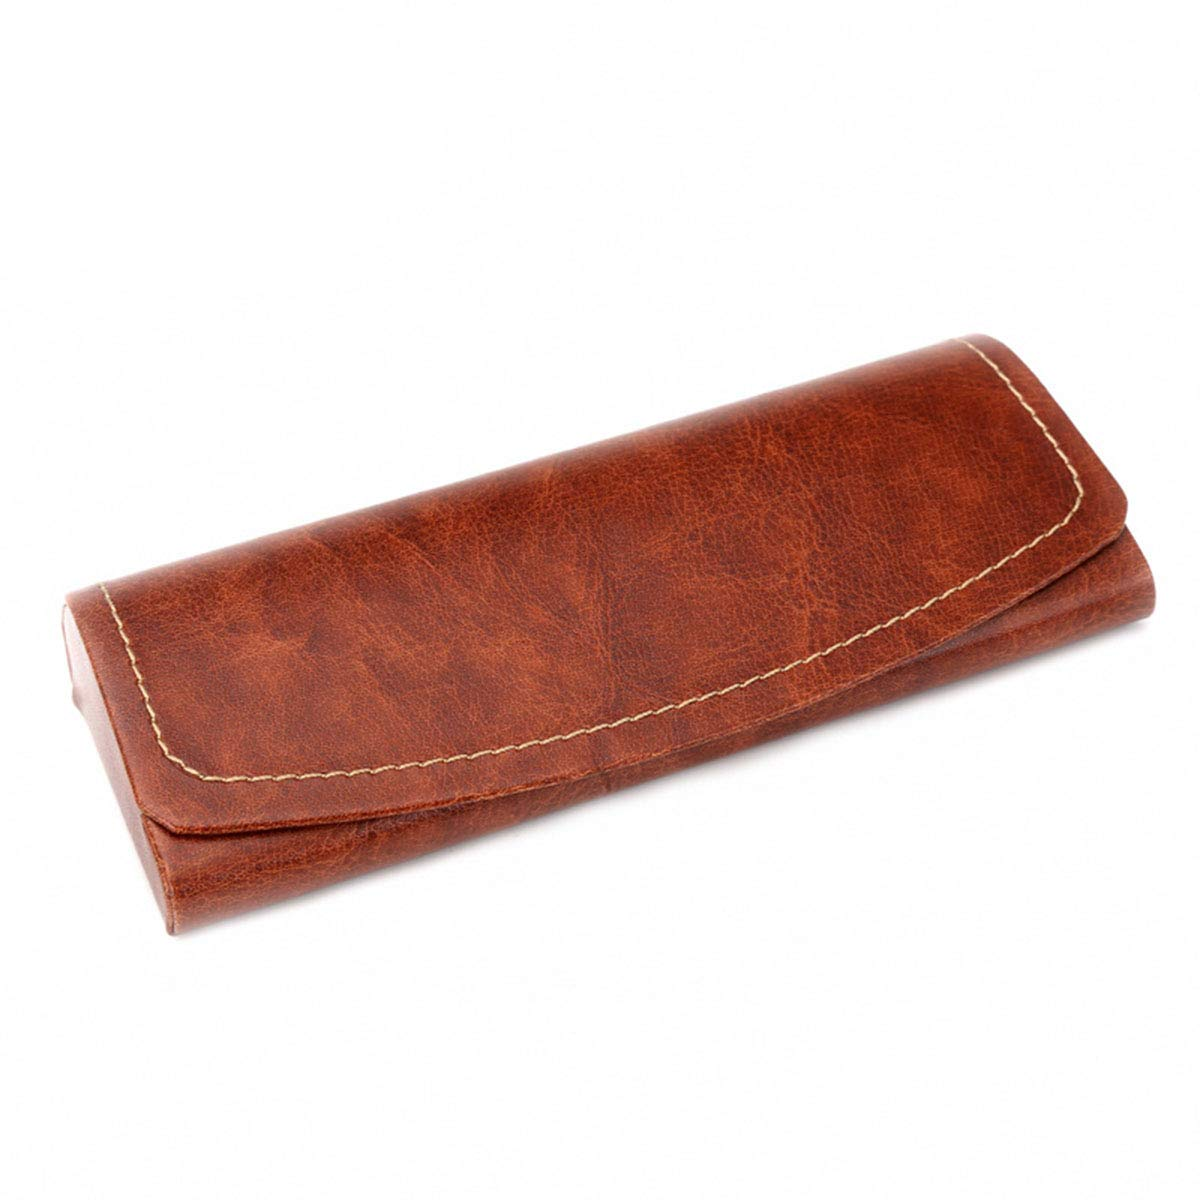 PU Leather Hard Shell Eyeglass Case Portable Sunglasses Glasses Holder Pouch (Brown) by Bauson (Image #2)